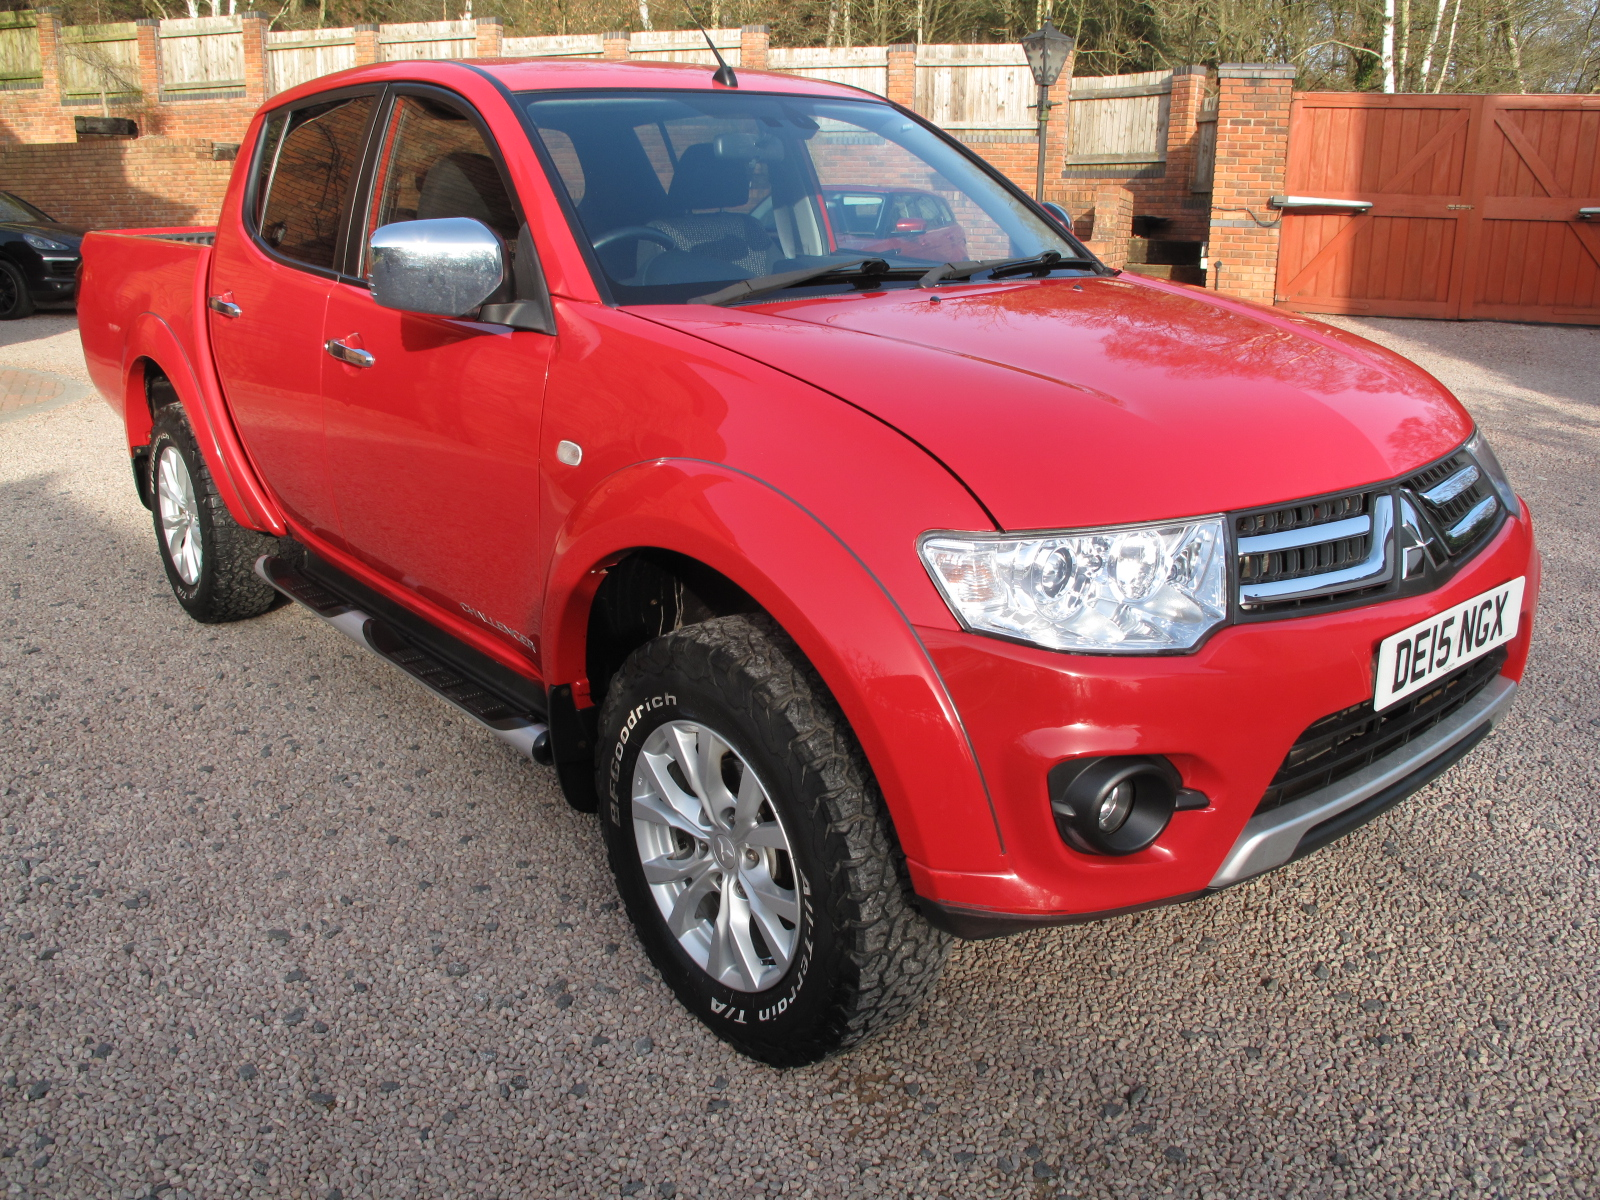 2015 15 Mitsubishi L200 2.5 DI-D CR Challenger Double Cab Pickup 4WD STUNNING TRUCK THROUGHOUT! ONLY 1 OWNER! NO VAT!